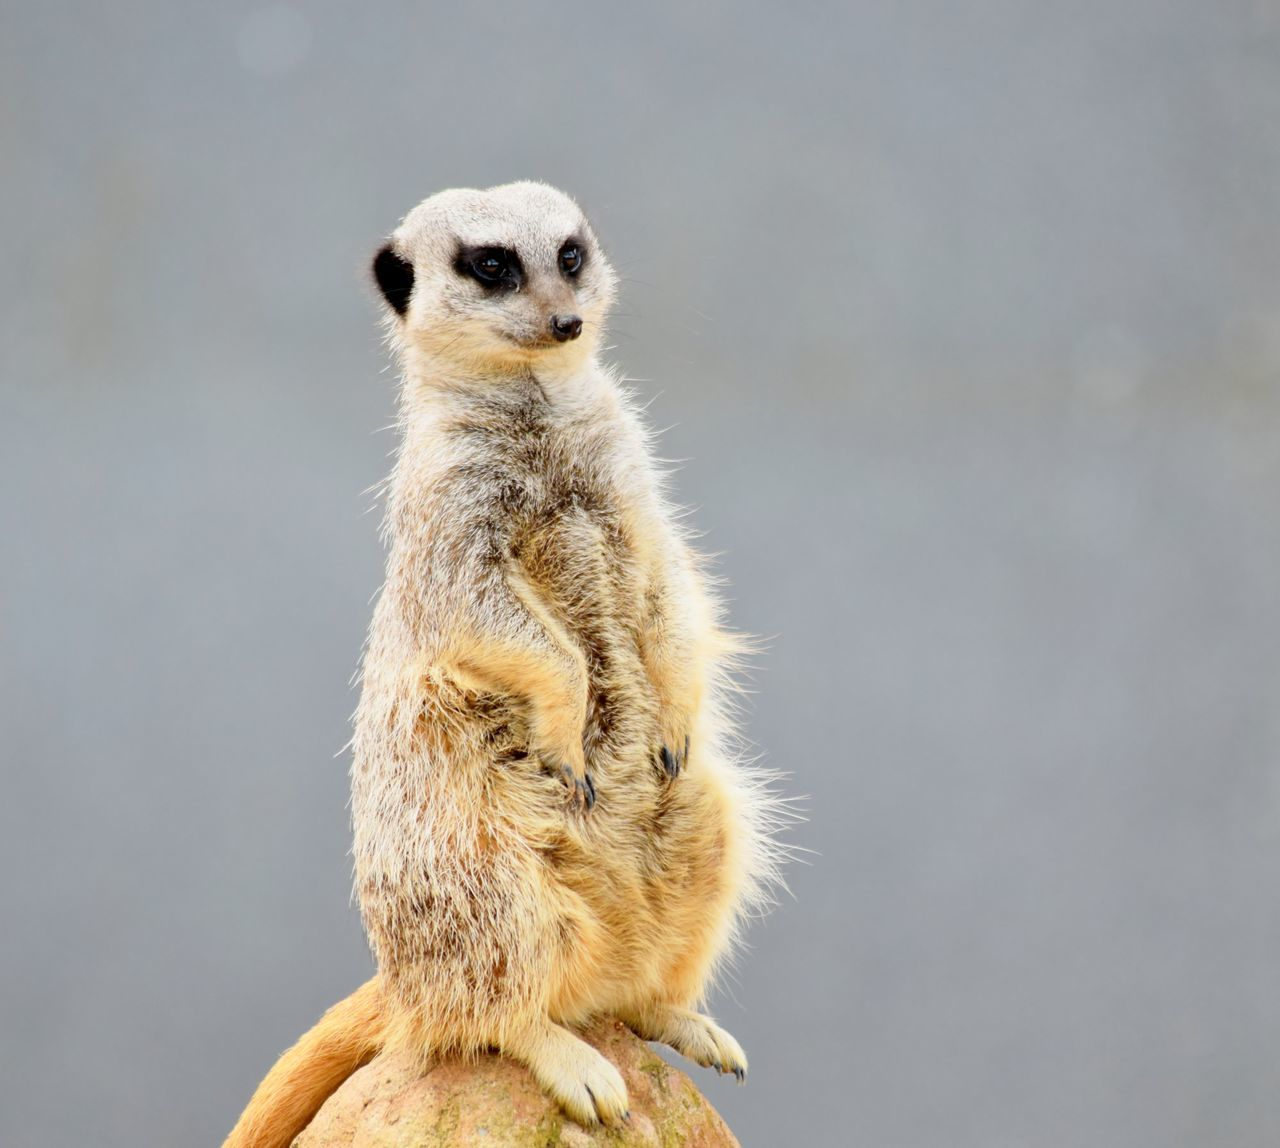 Animal Wildlife Animals In The Wild Day Mammal Meerkat Nature No People One Animal Outdoors